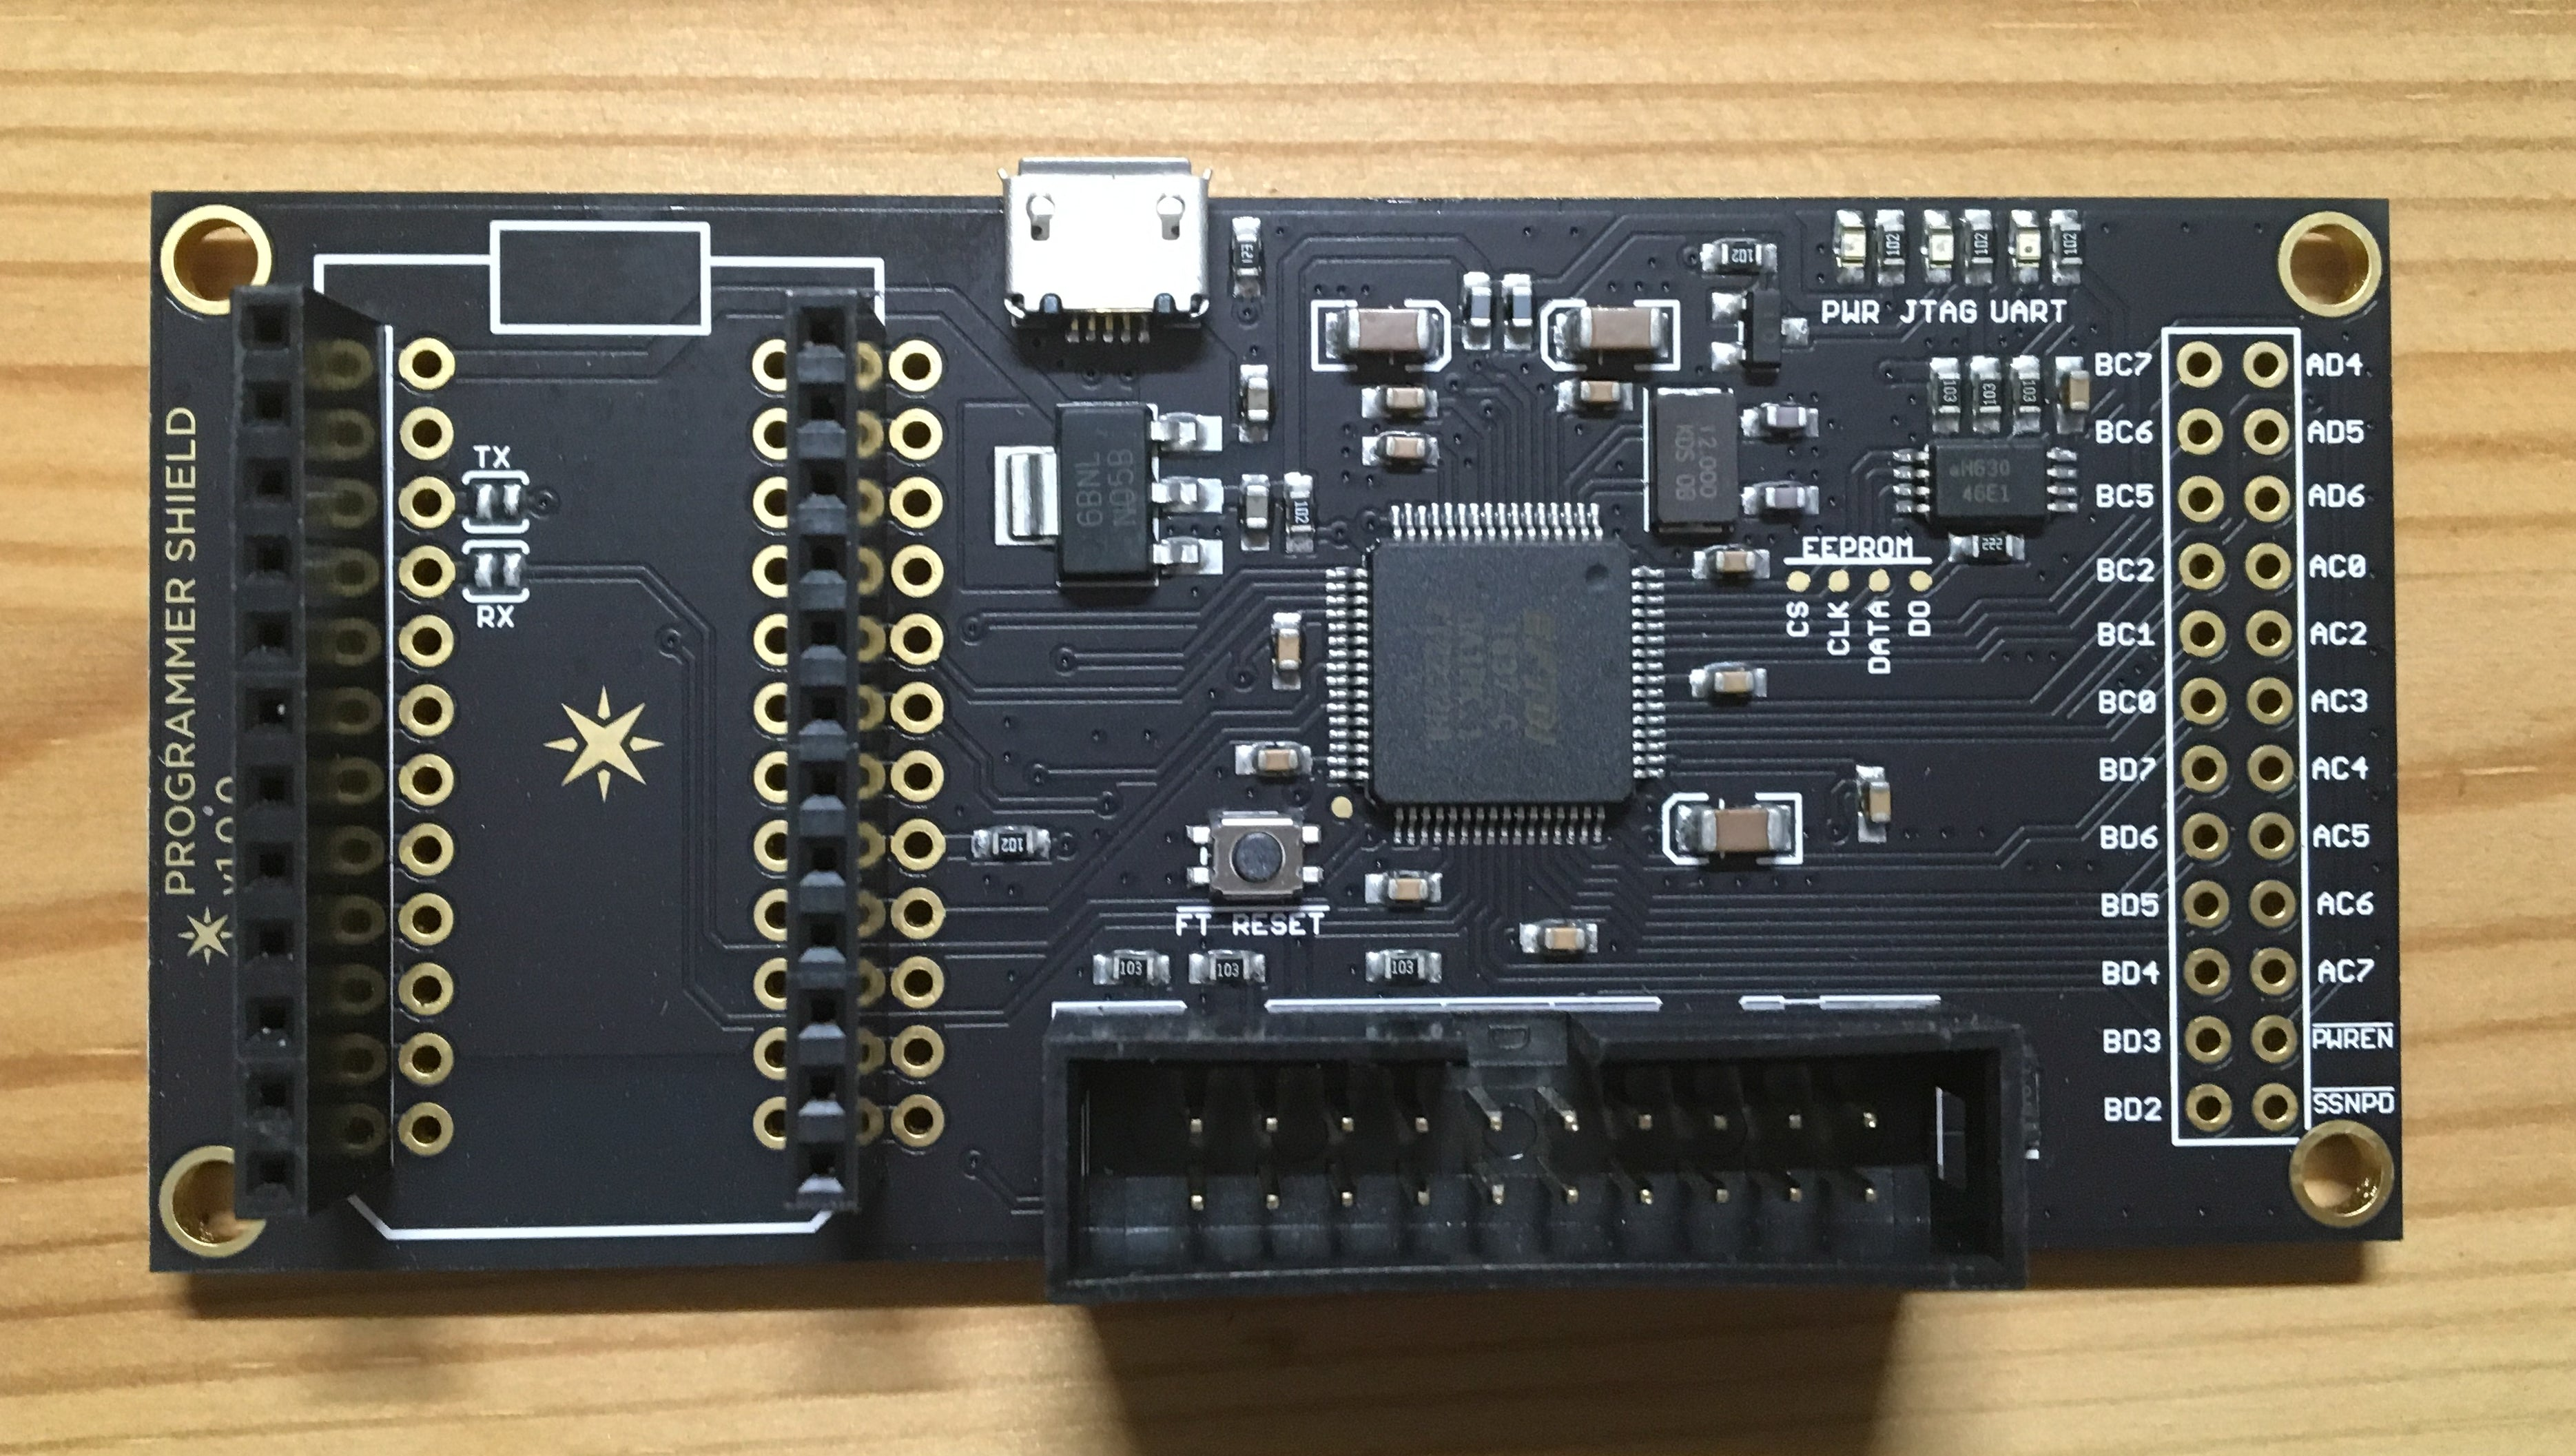 Particle Programmer Shield V1.0 for Photon - Server On The Move